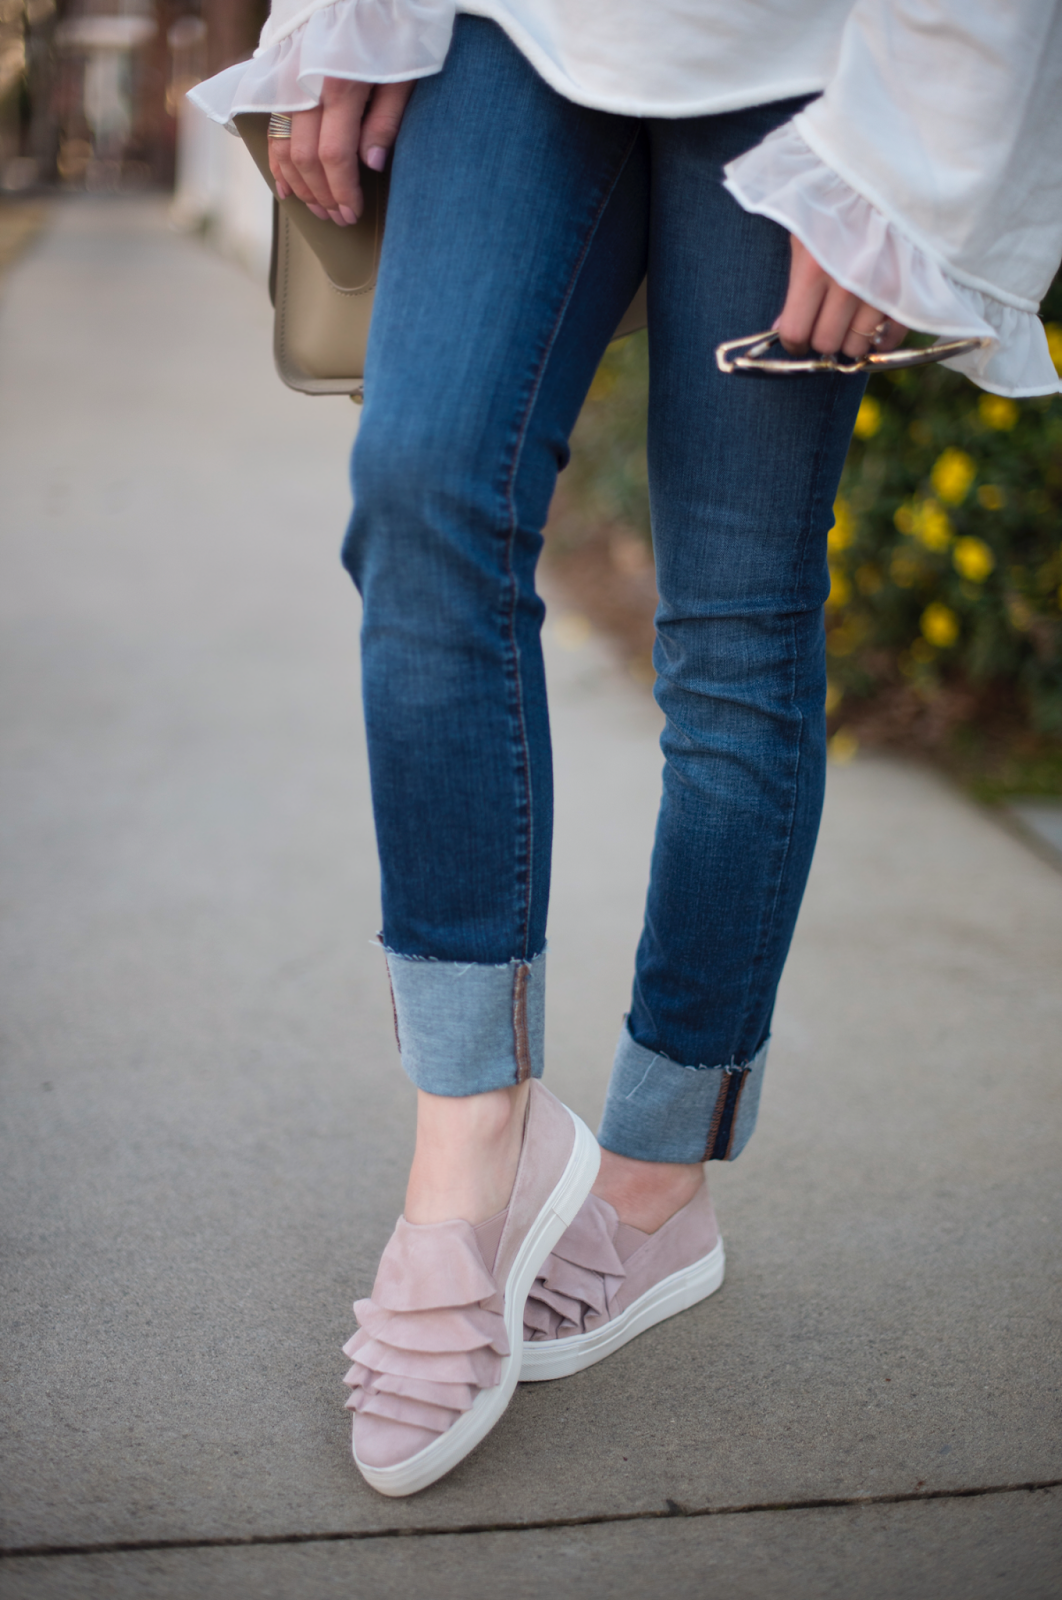 Ruffle Blush Sneakers - Something Delightful Blog